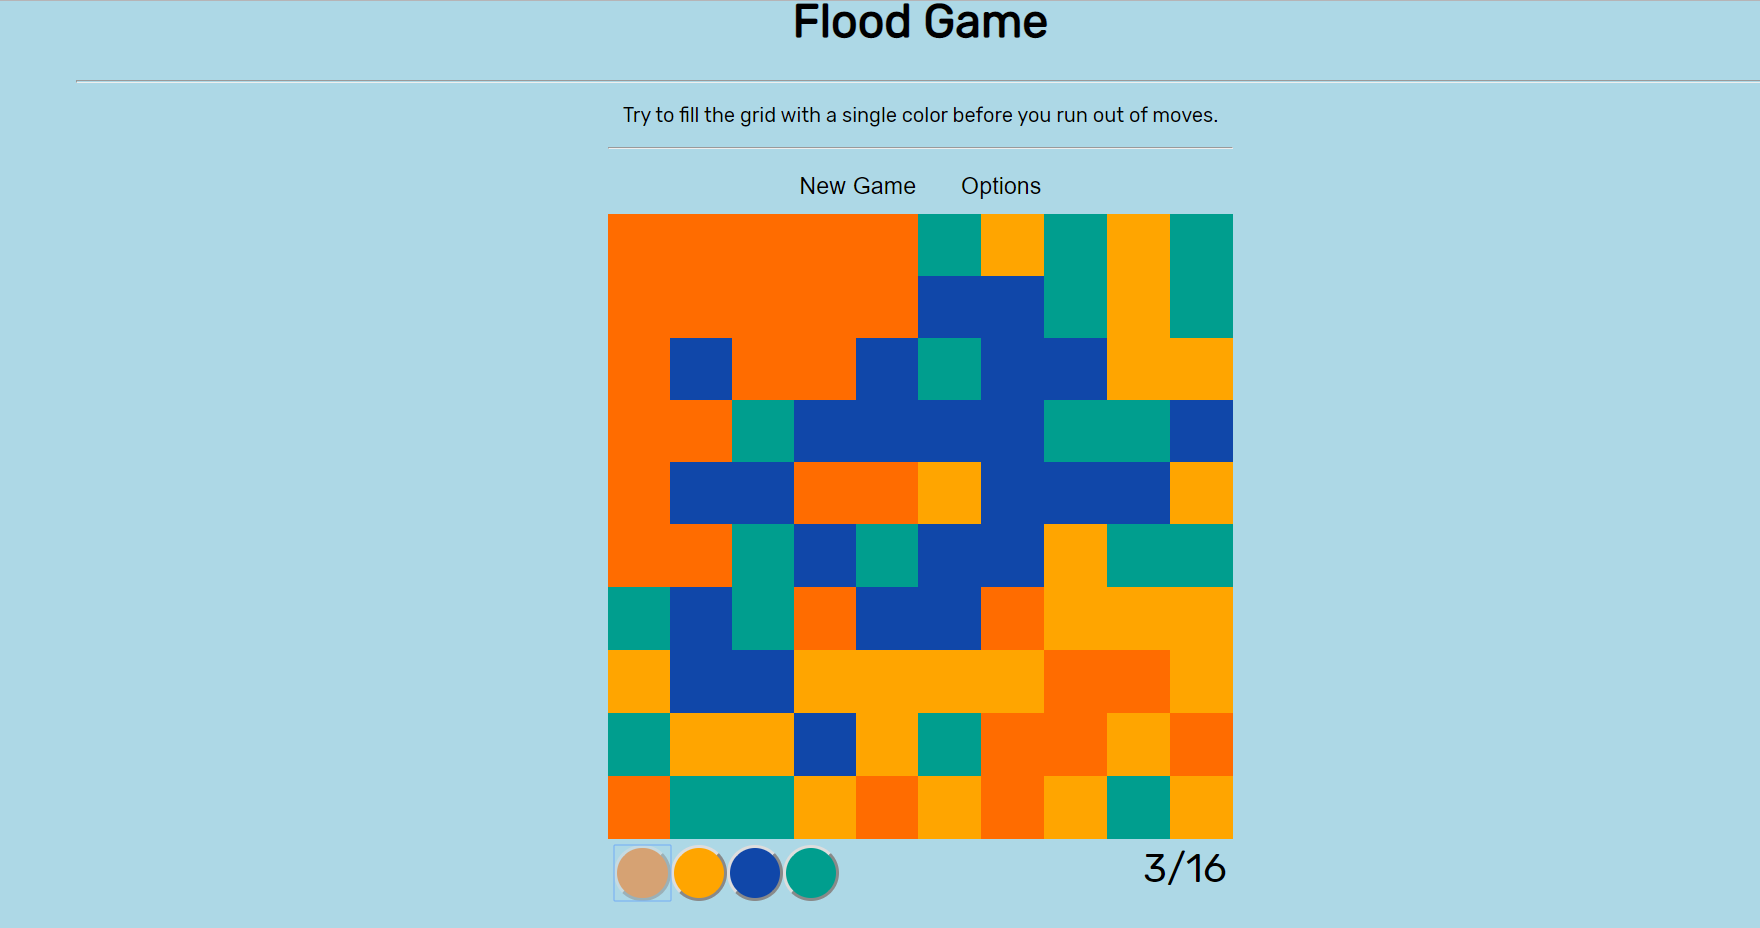 image of Flood Game